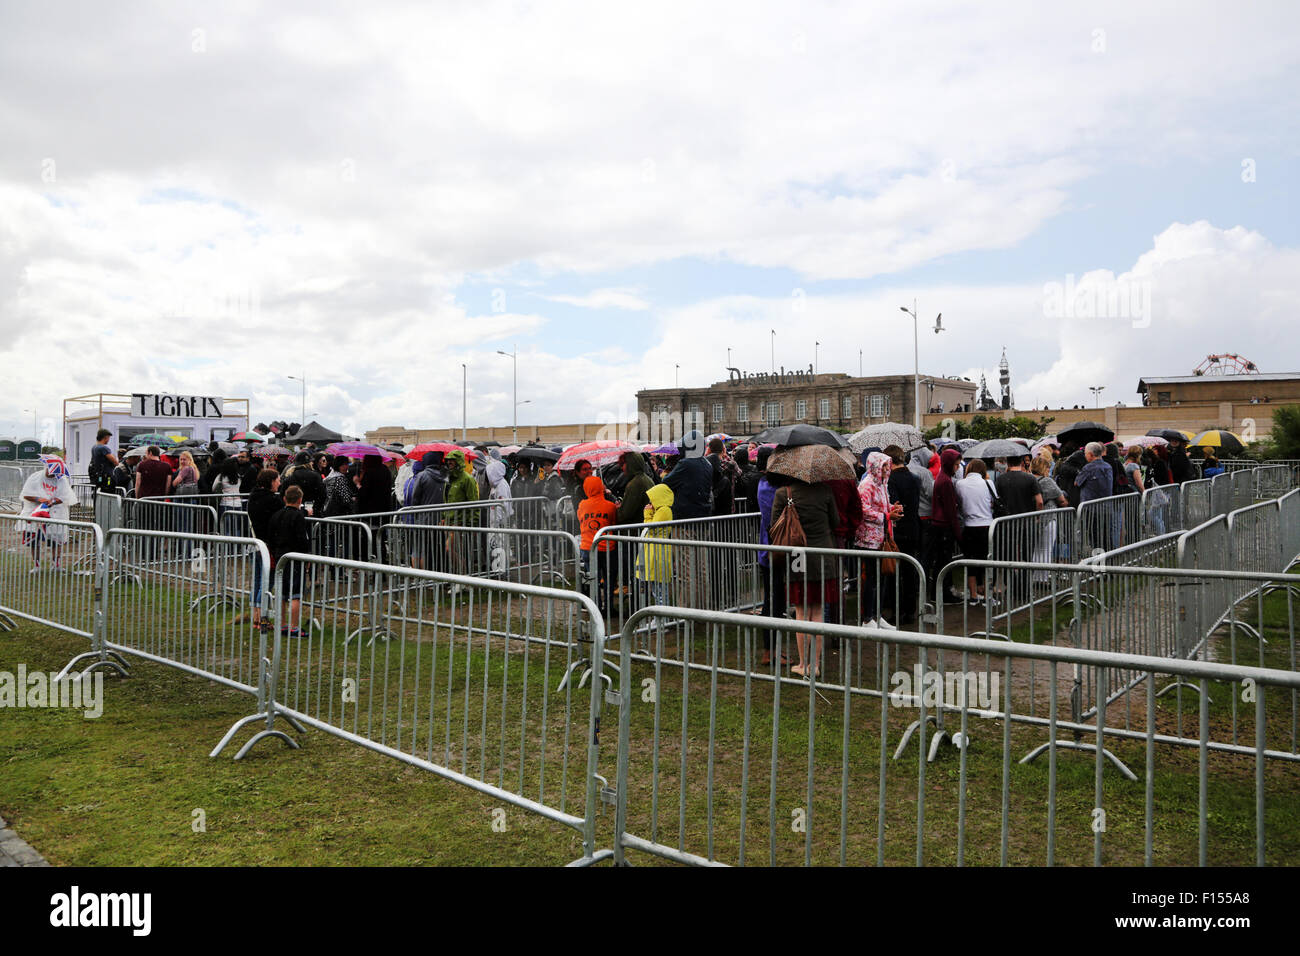 Weston-s-Mare, UK. 27th August 2015. People queuing for tickets for entry to the Banksy Dismaland Fun Park in Weston Stock Photo